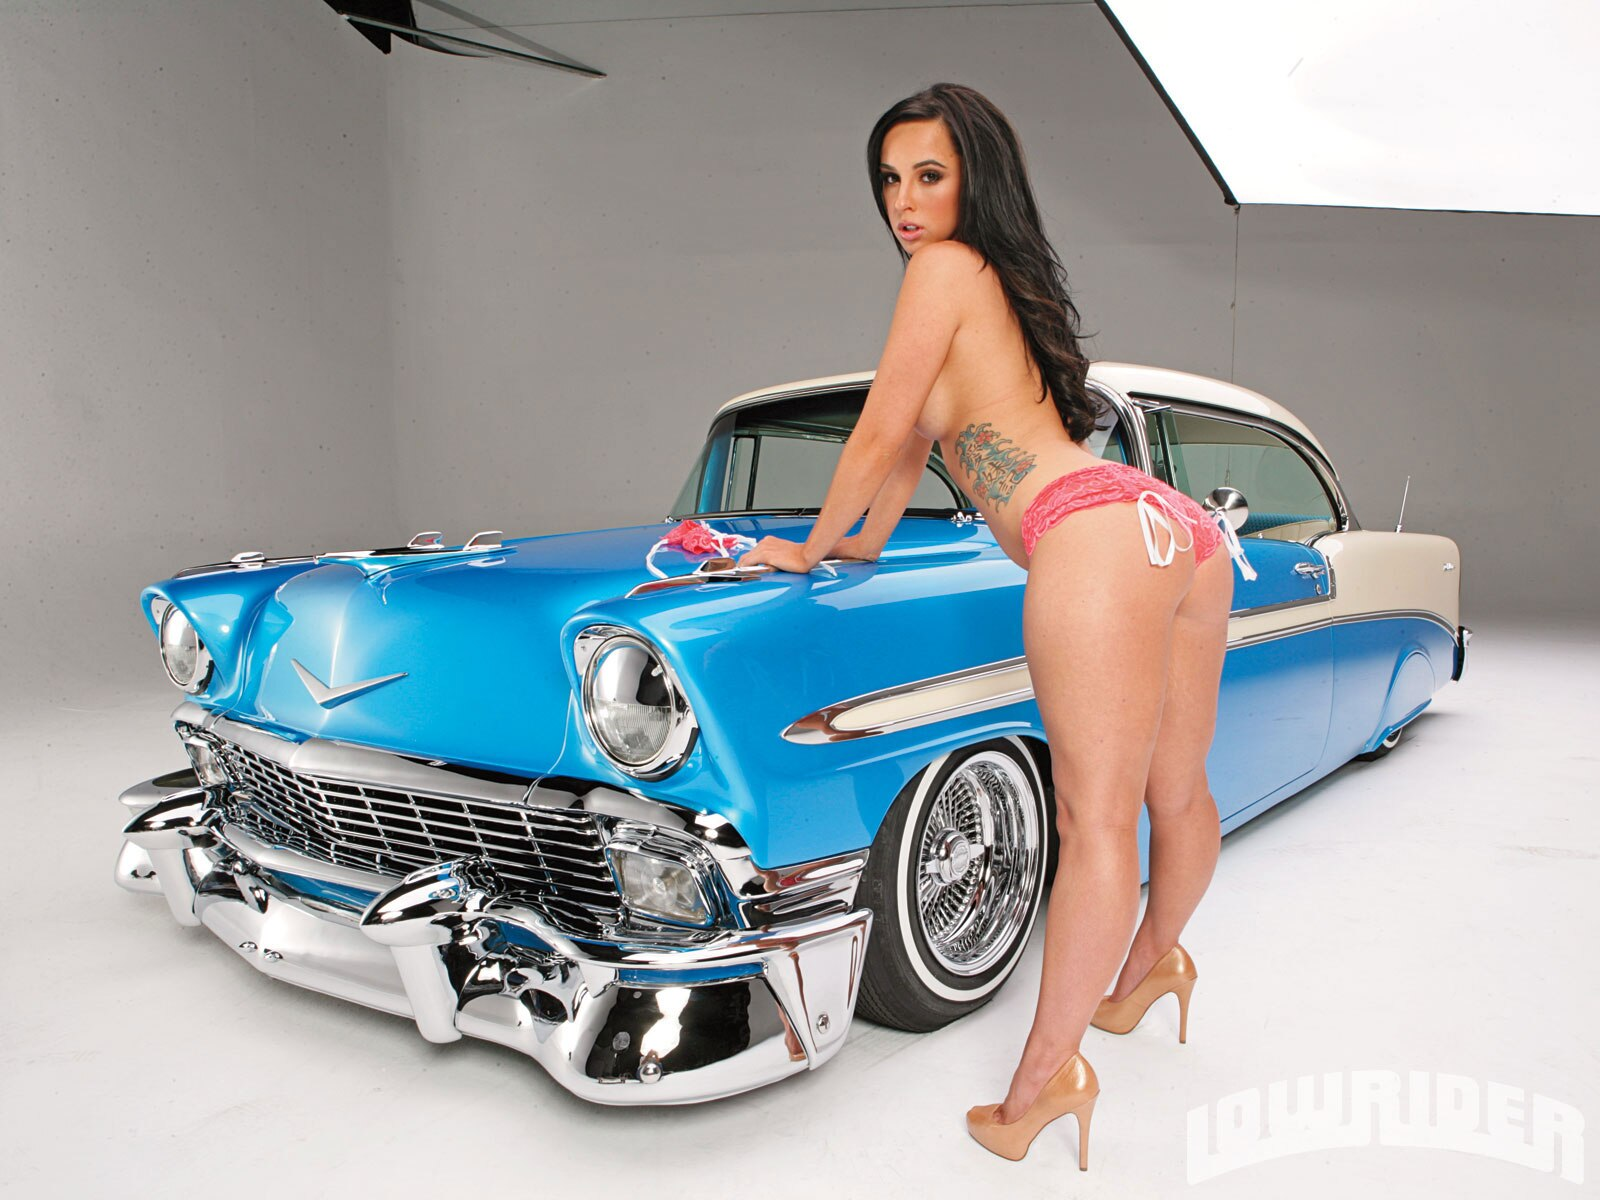 Remarkable, Cool lowriders with naked chicks pussy